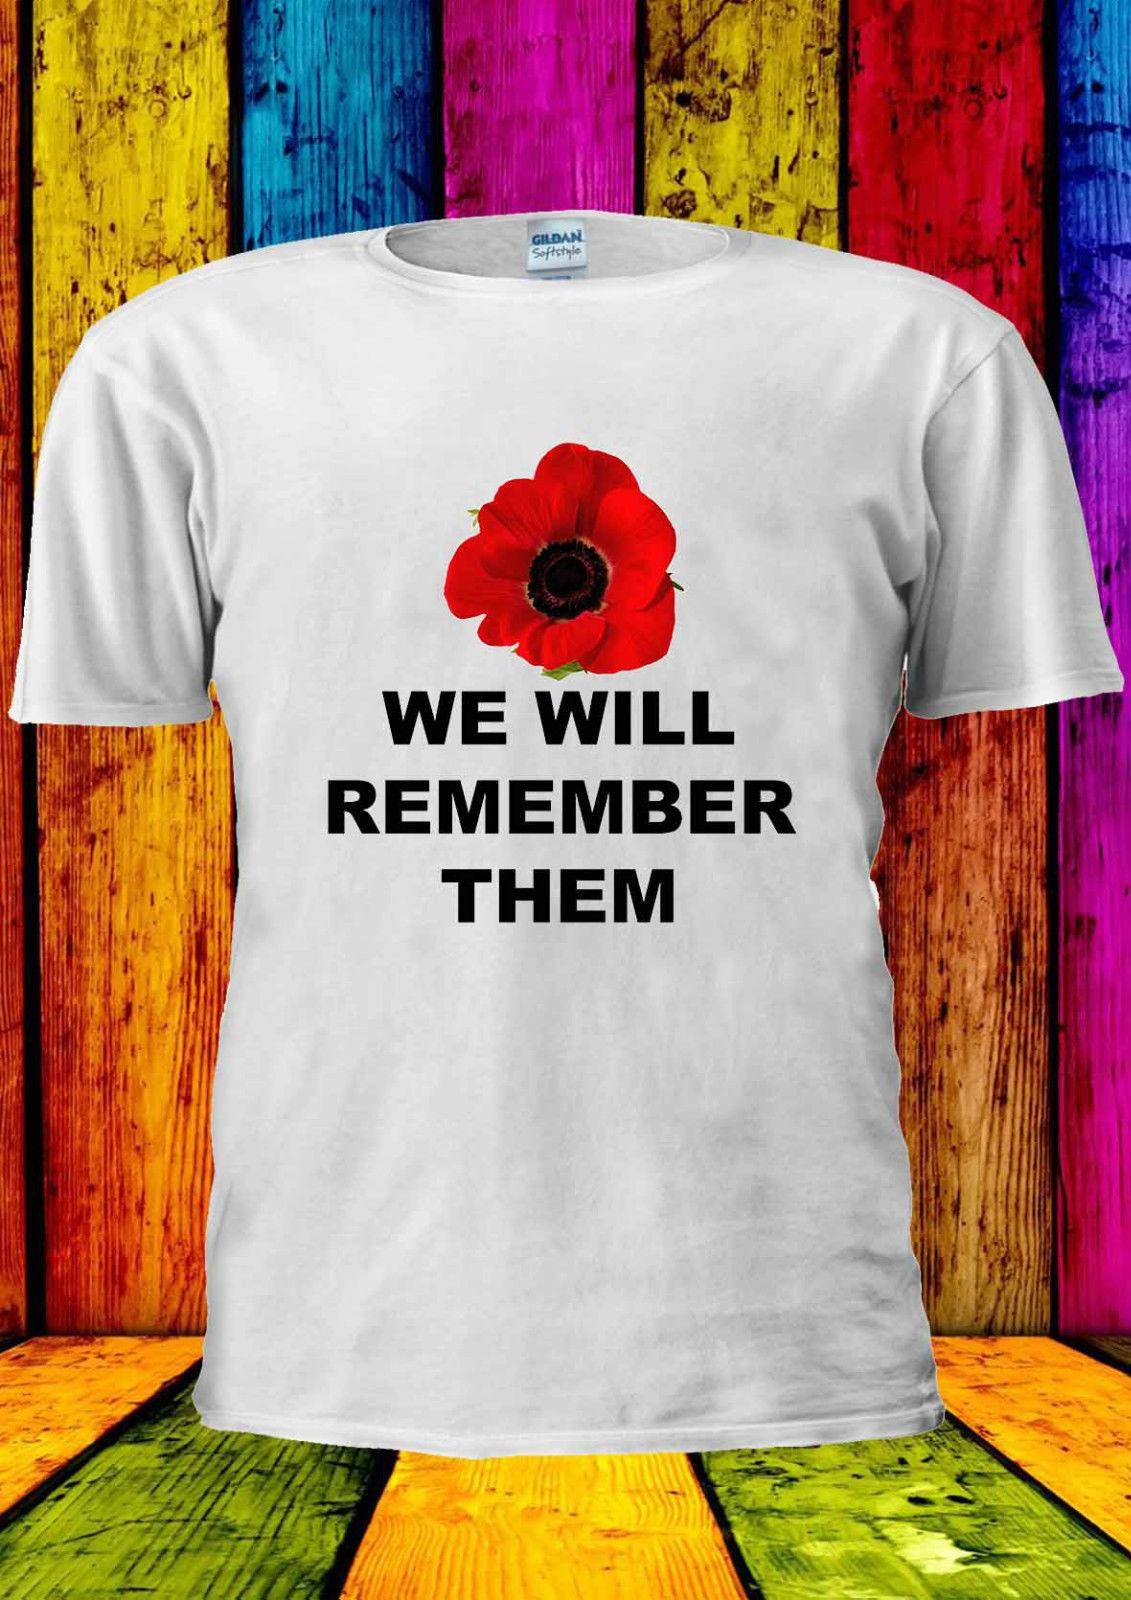 6e25c8dc5ad895 Poppy Day Remembrance Annual 8th T Shirt Vest Tank Top Men Women Unisex  2186 Cool Casual Pride T Shirt Men Unisex New T Shirt Designs Cool Shirts  From ...